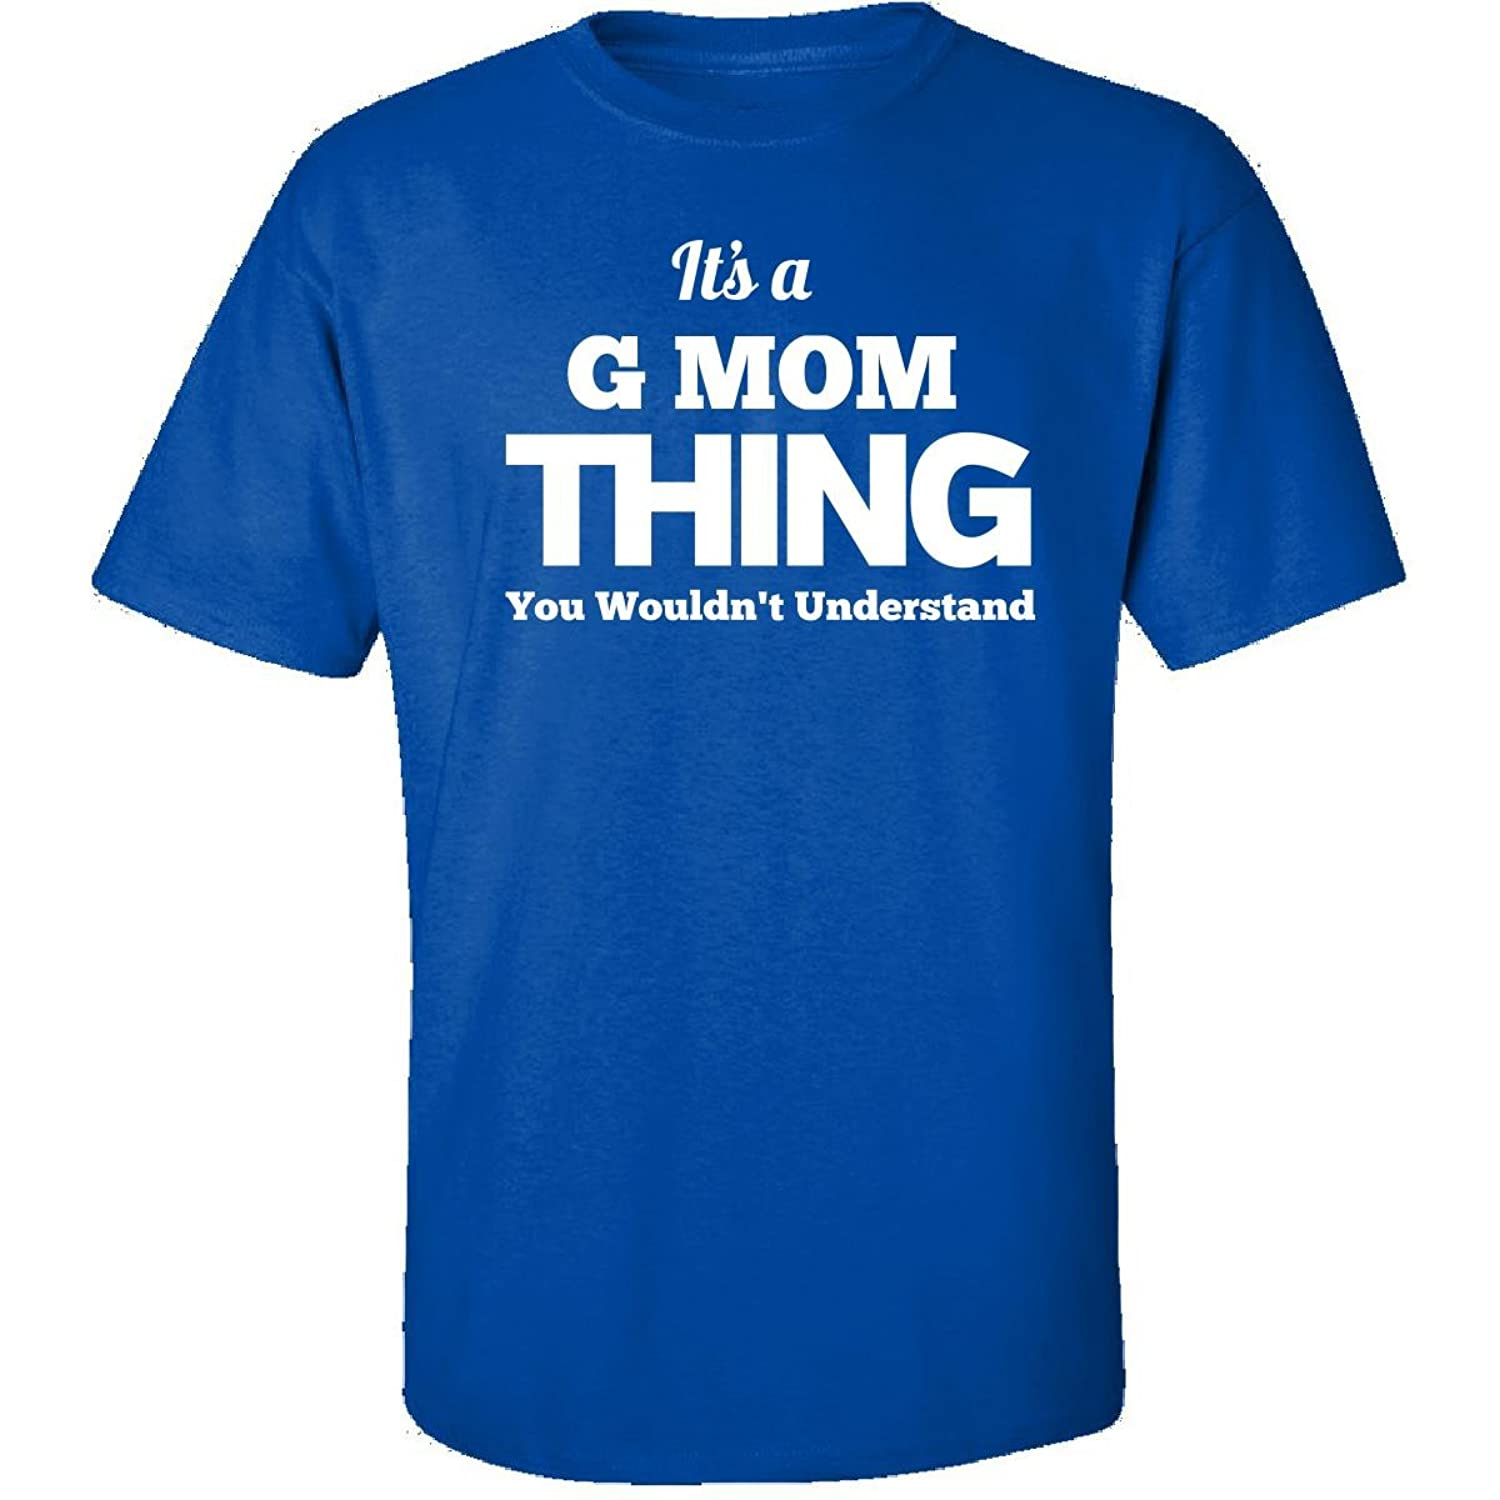 Its A G Mom Thing You Wouldnt Understand - Adult Shirt